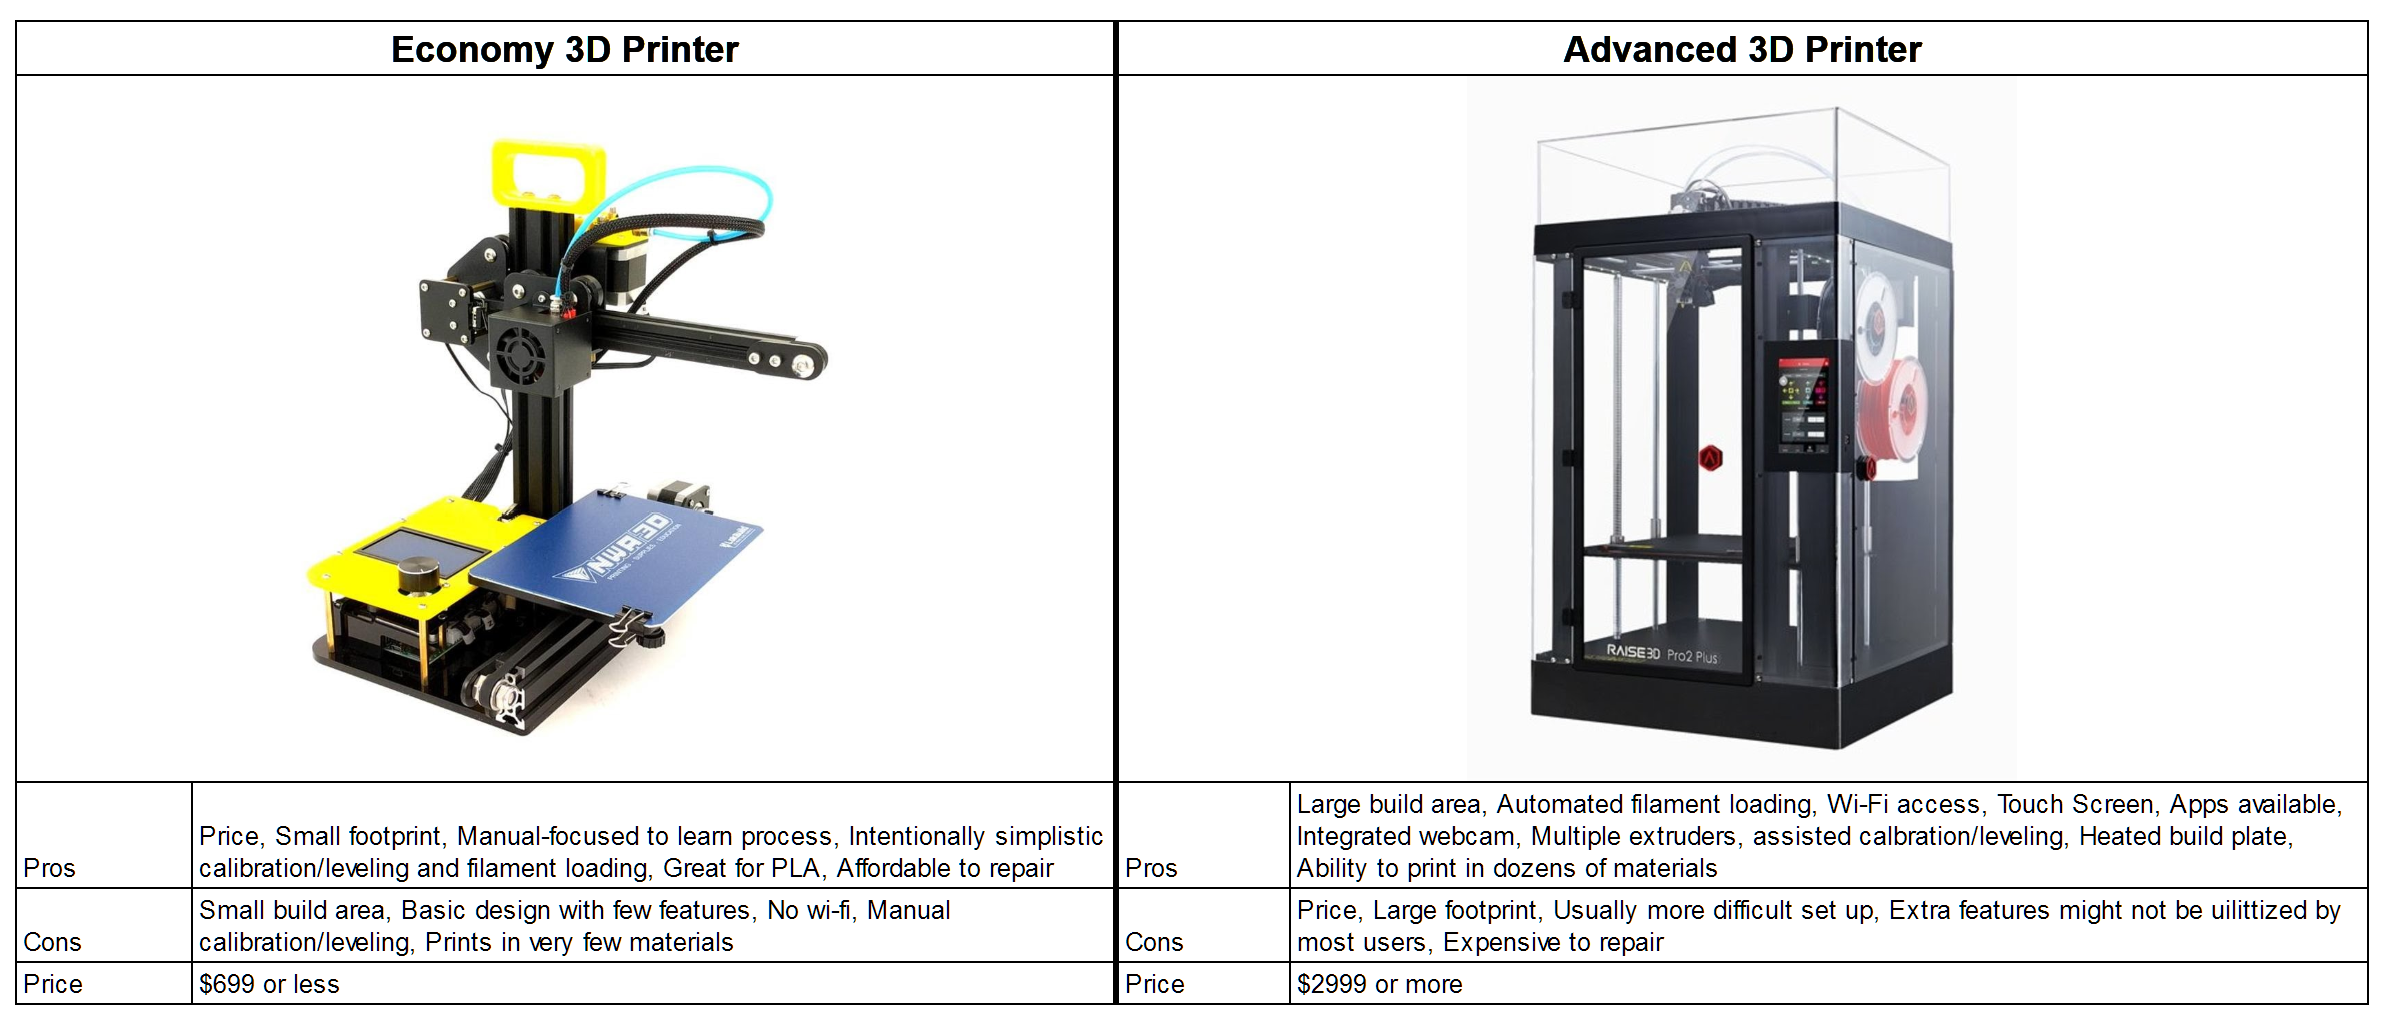 Here you can see two different versions of 3D printers.